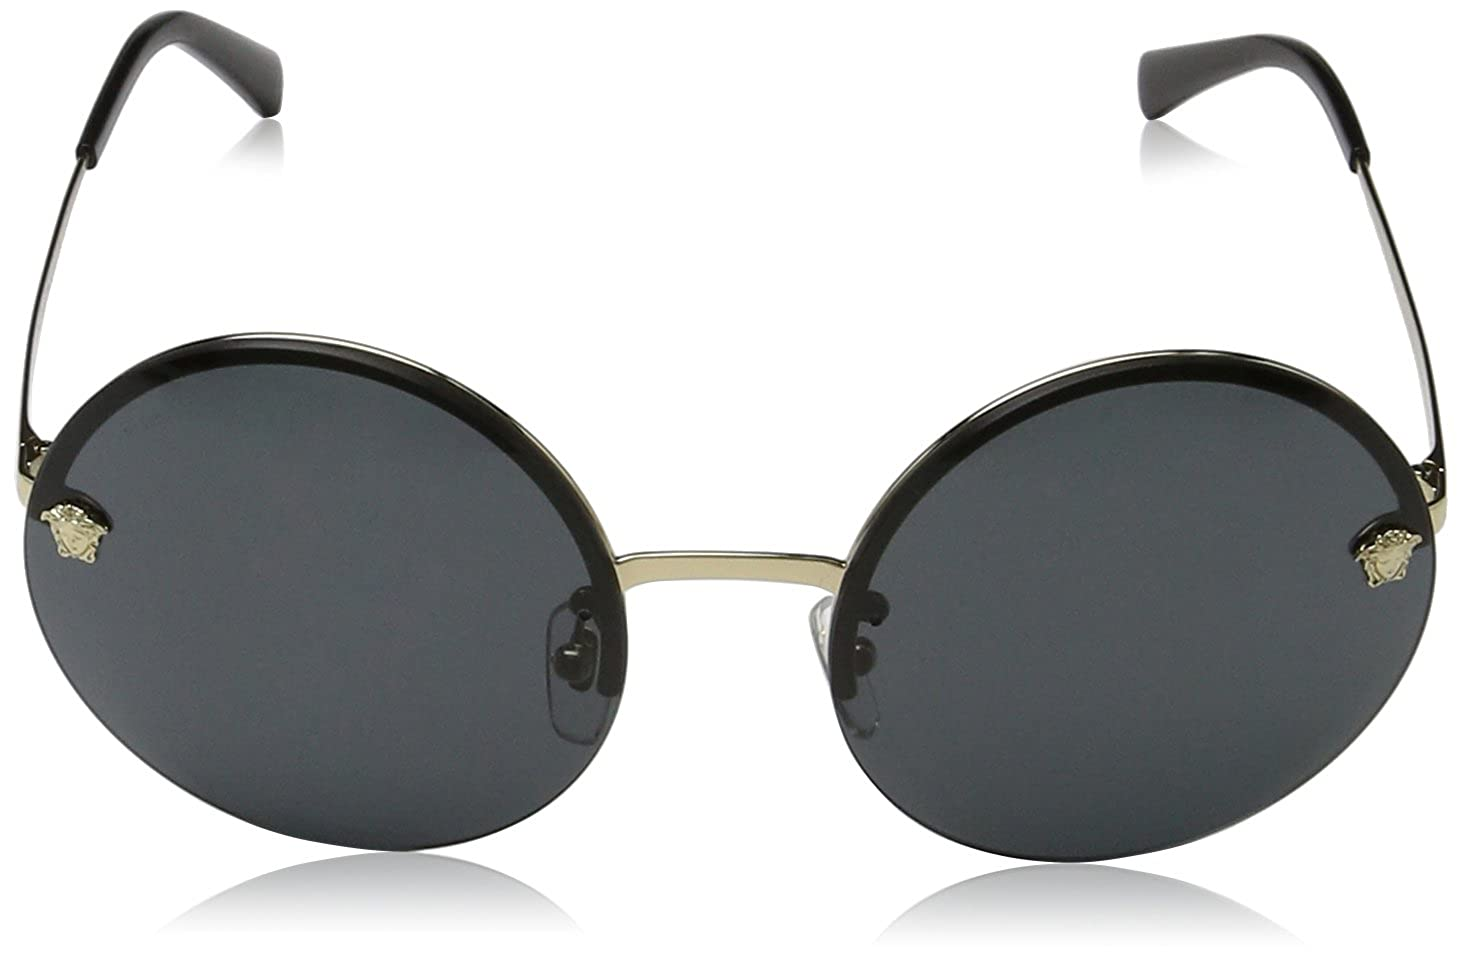 44e564420bdc Amazon.com  Versace Womens Sunglasses Gold Gold Metal - Non-Polarized -  59mm  Versace  Clothing